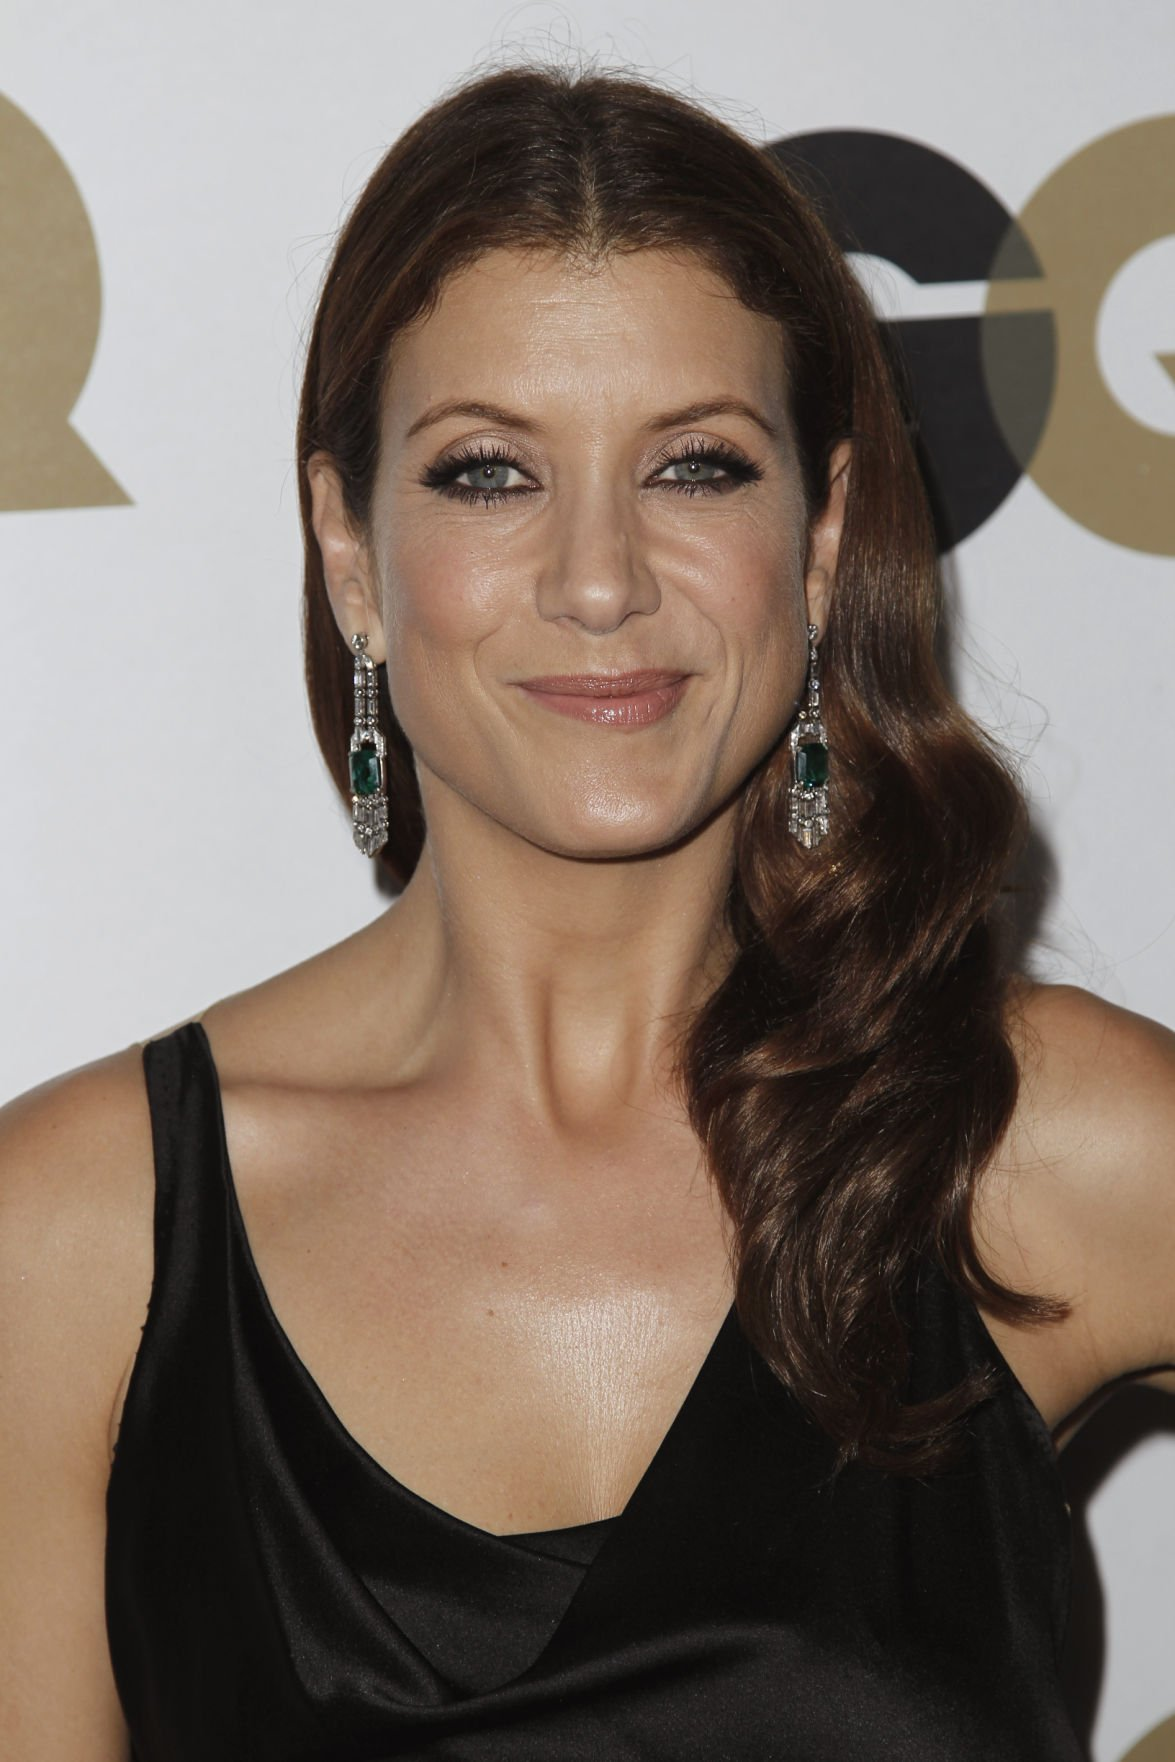 Kate Walsh nudes (15 foto and video), Topless, Is a cute, Selfie, butt 2006